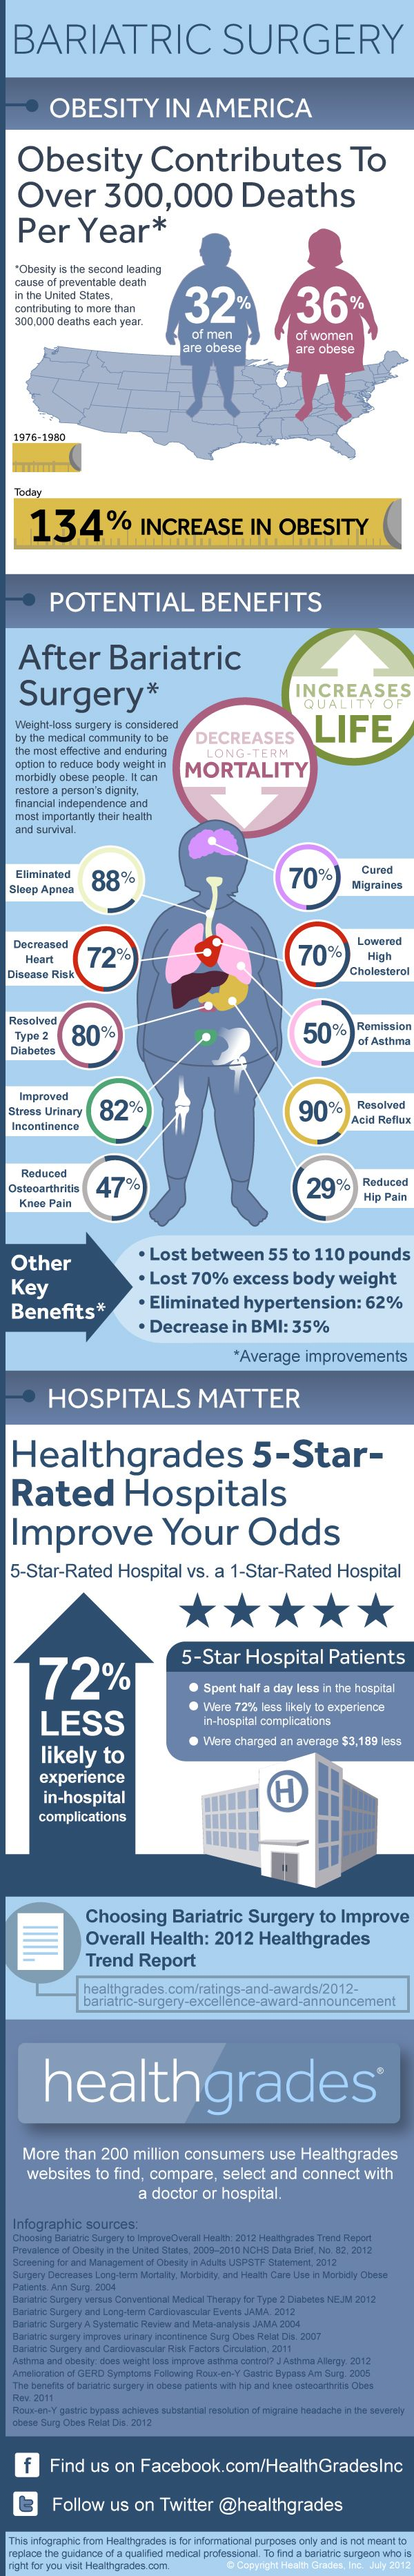 Bariatric Overview Info Graphic. Good Information about Weight Loss Surgery